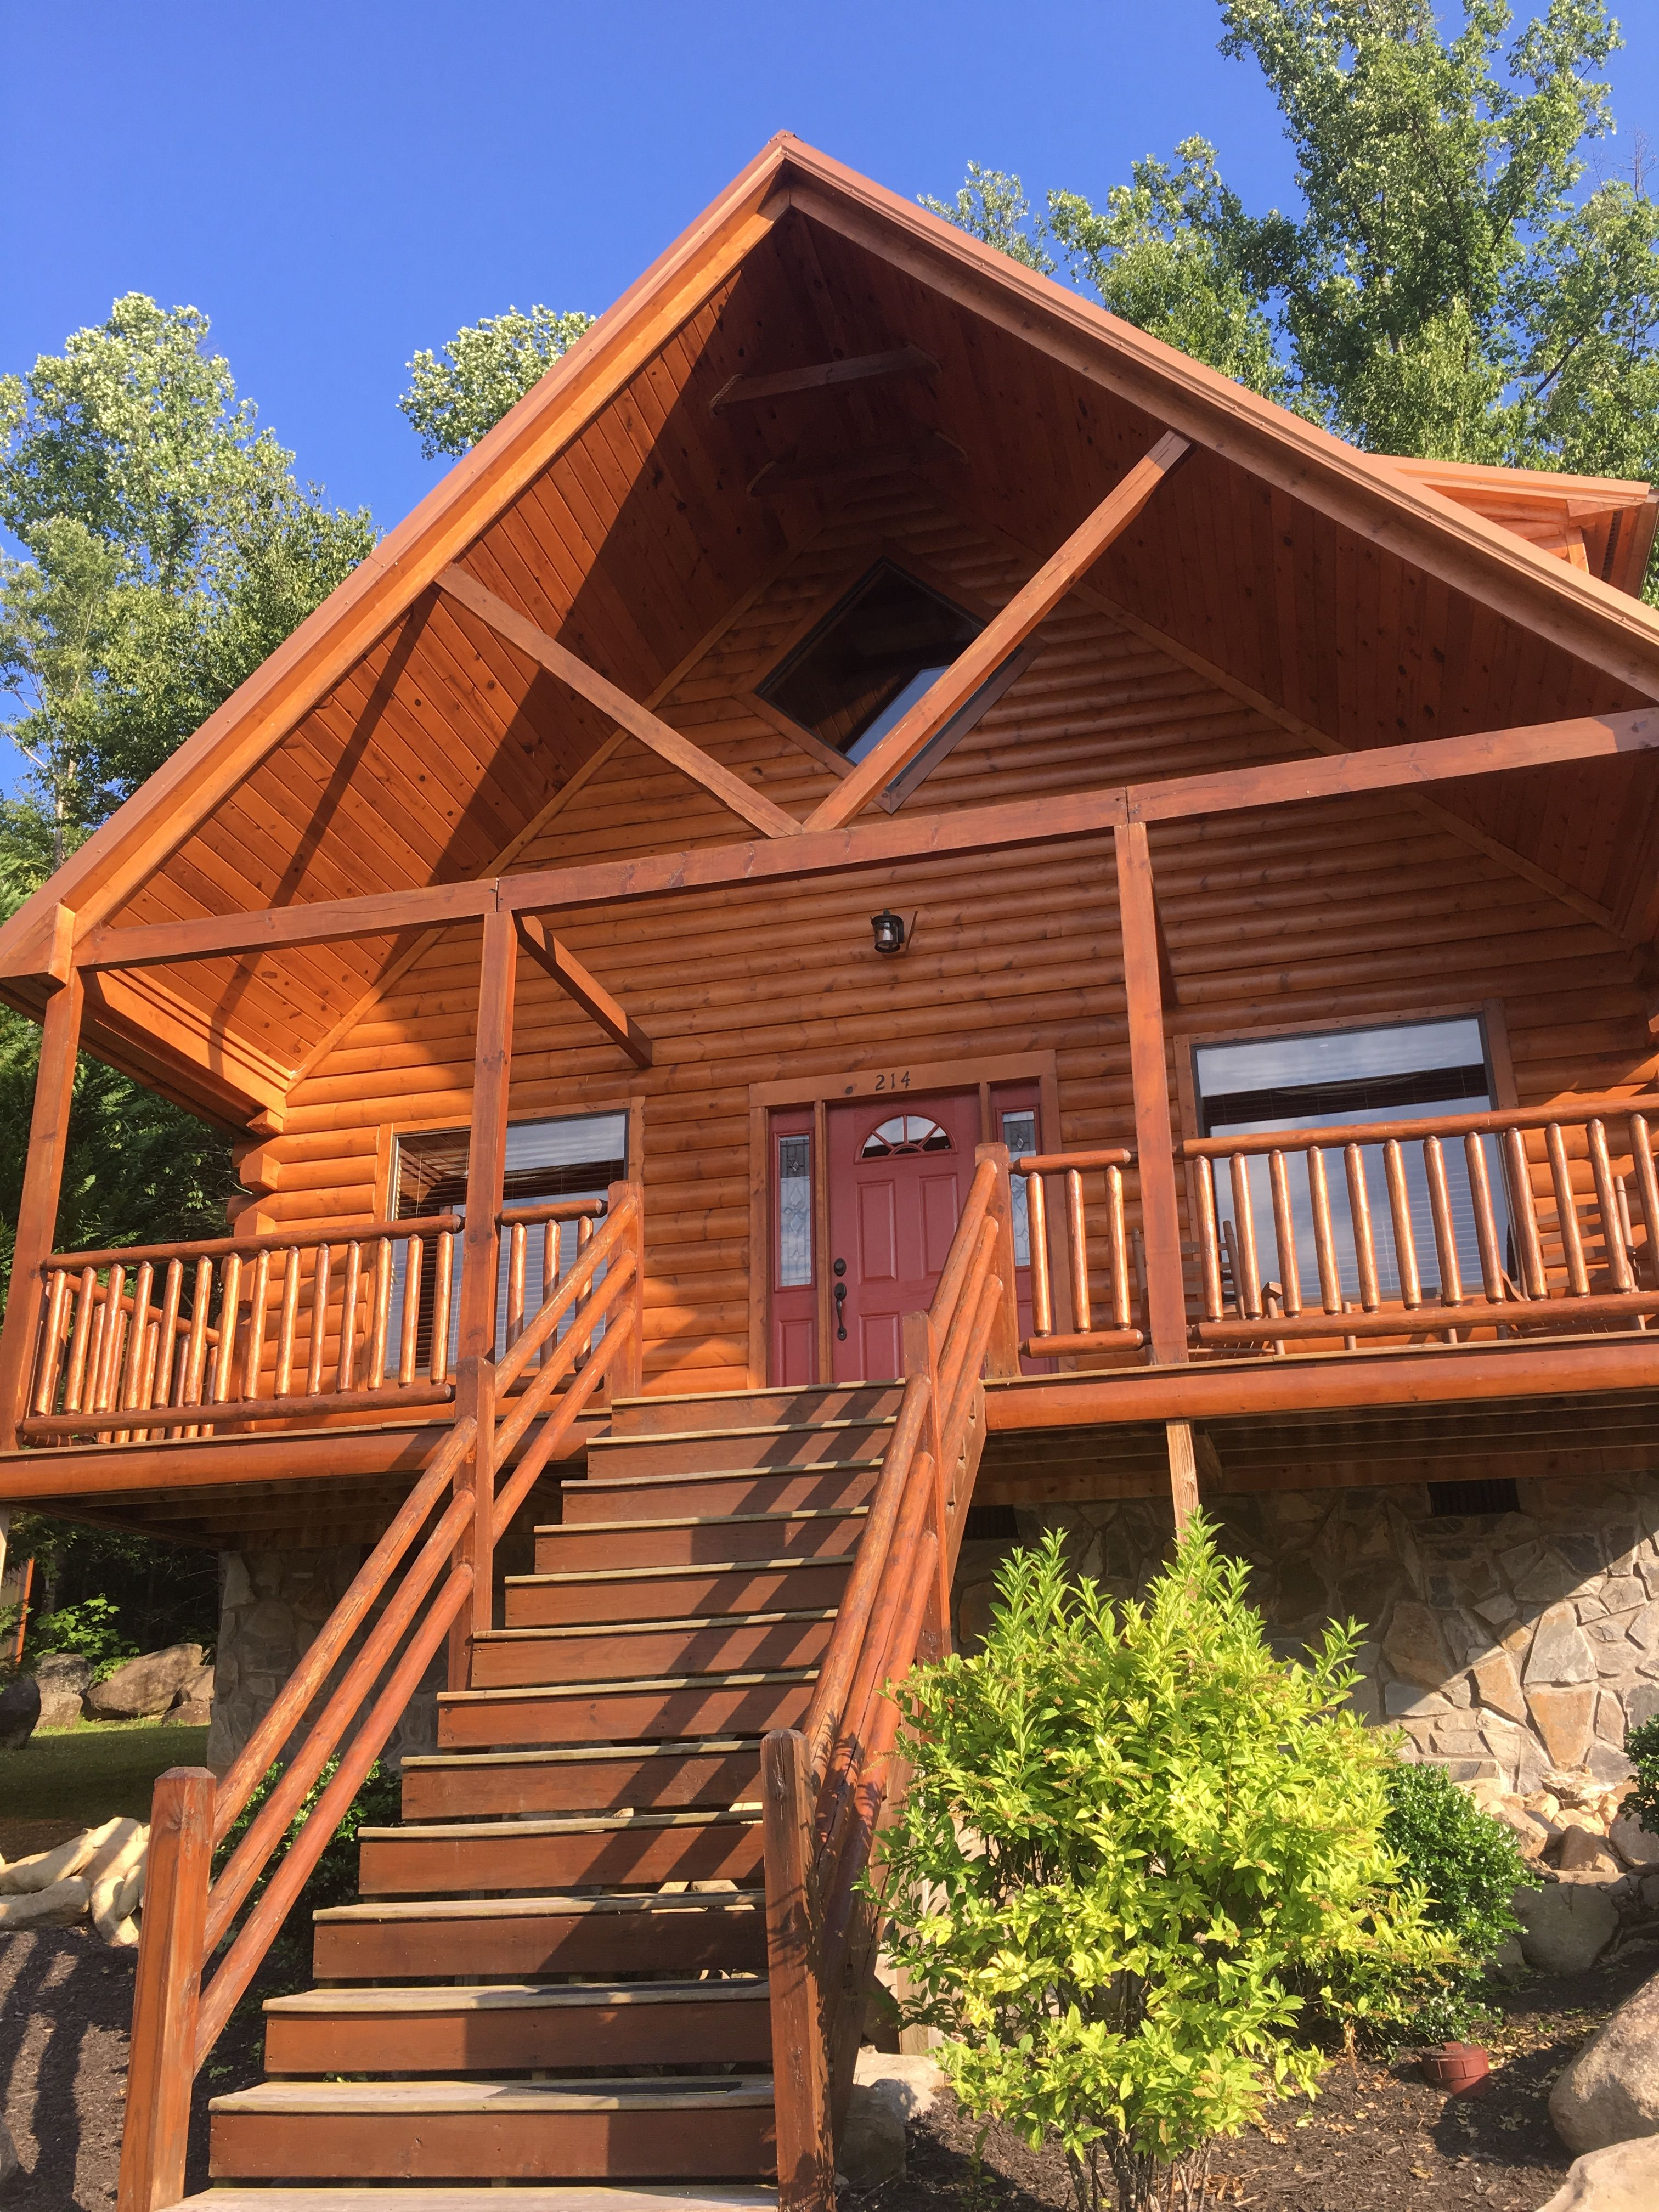 forge pigeon under rentals smoky memories hearthside and in cabin cabins gatlinburg mountain